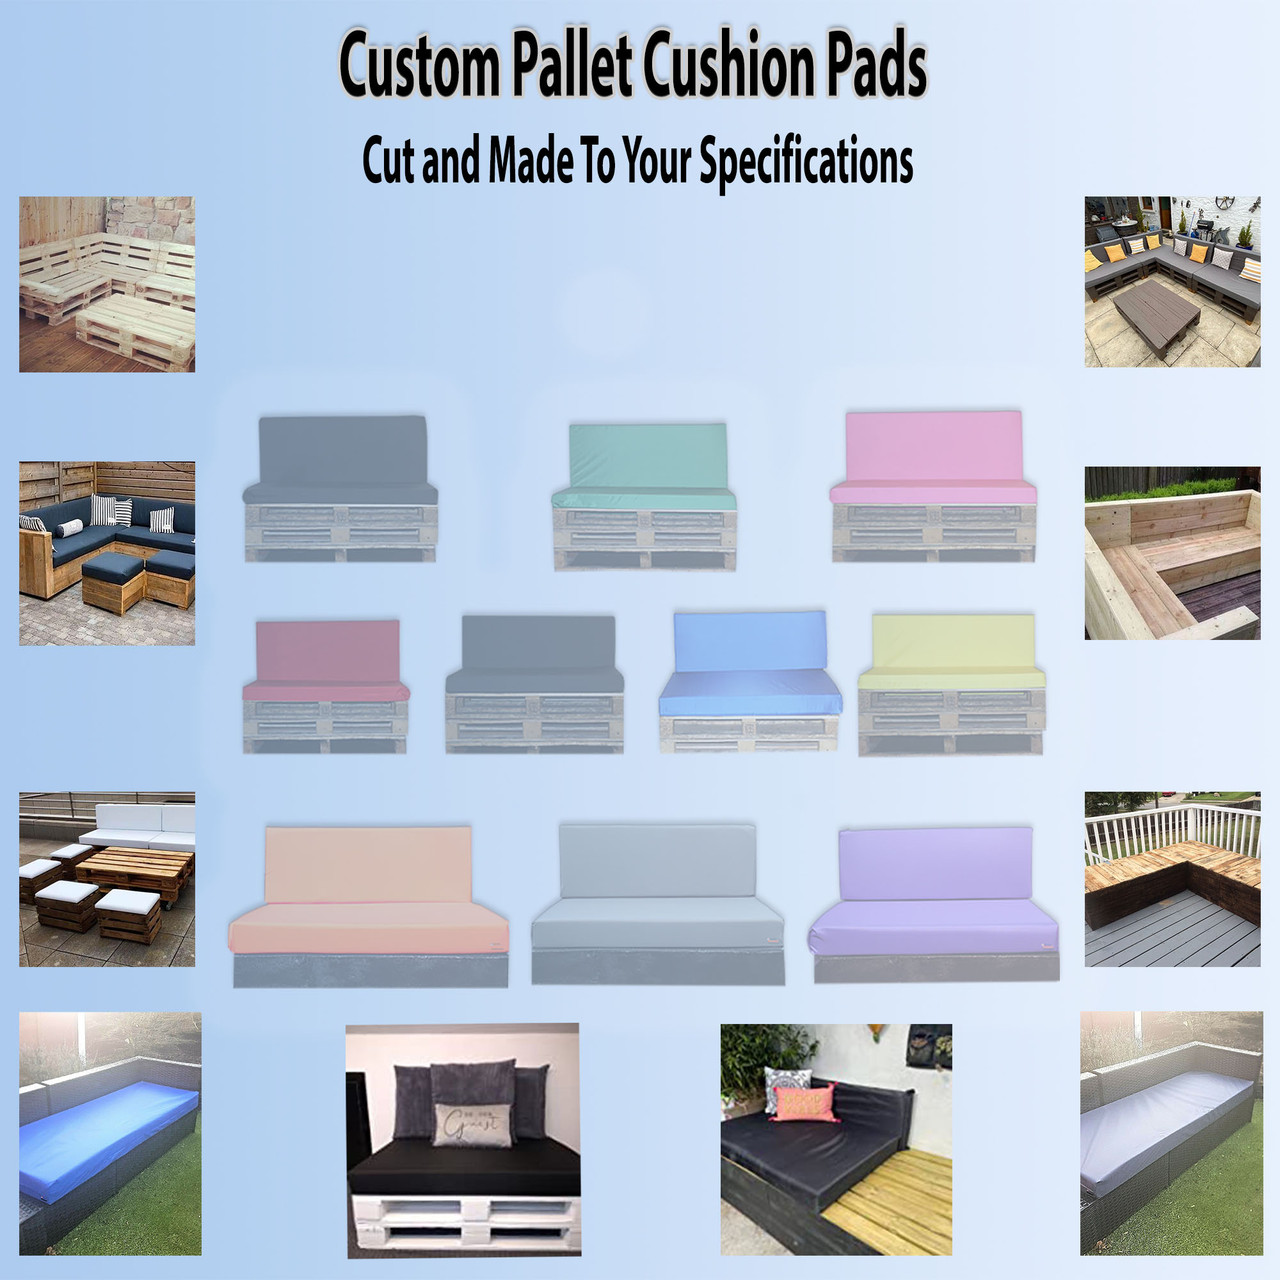 Custom-pallet-cushion-pads-cut-to-size